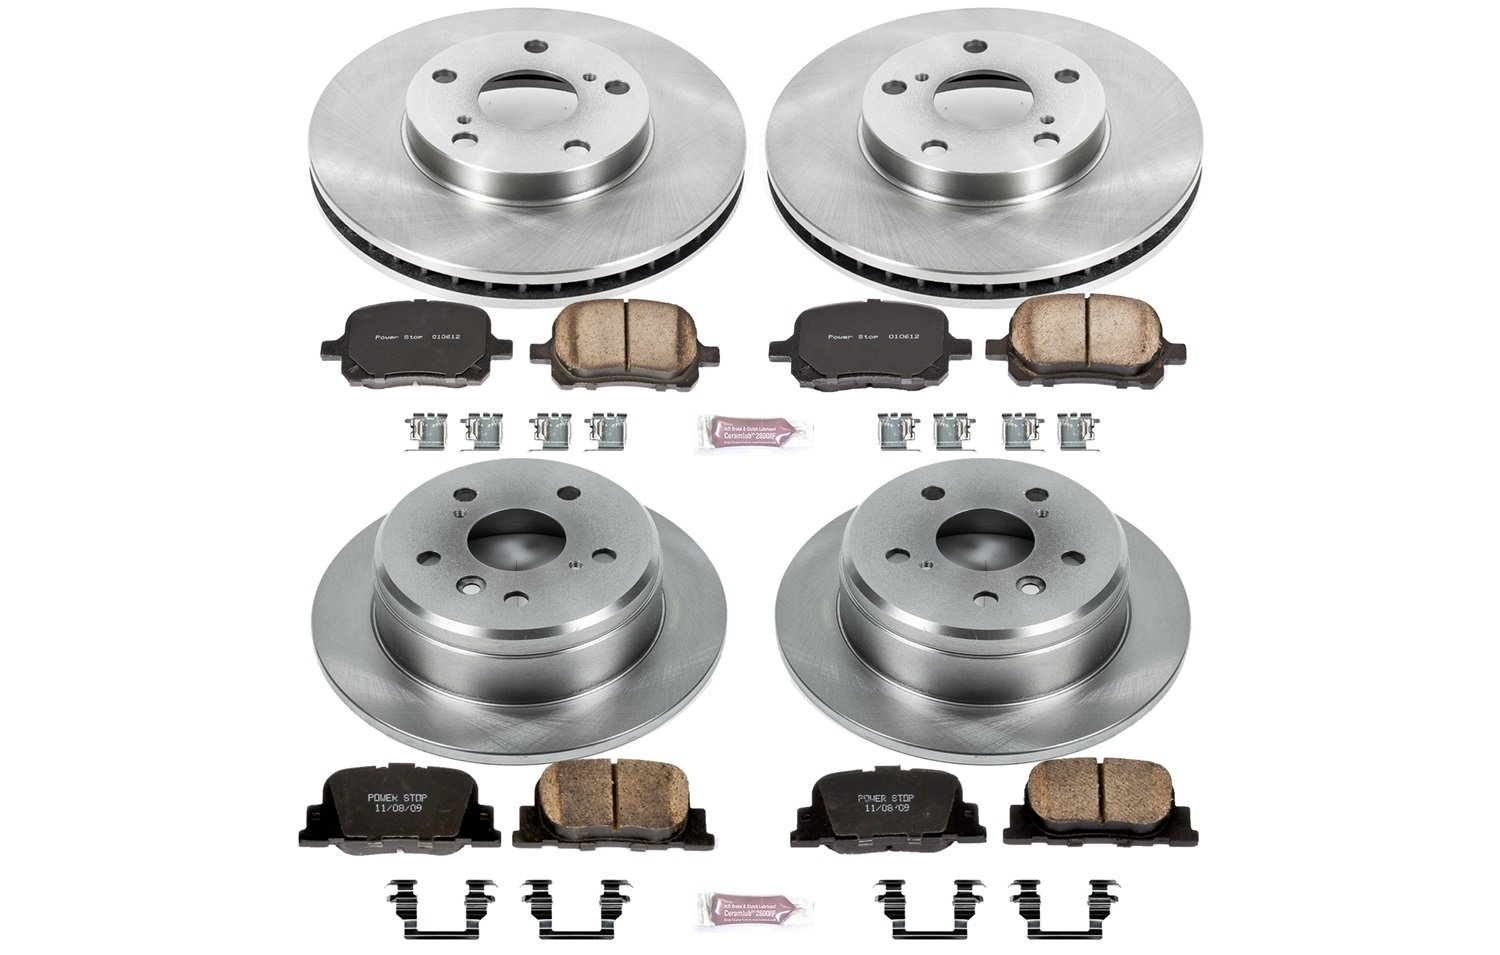 Autospecialty KOE1061 1-Click OE Replacement Brake Kit by Power Stop